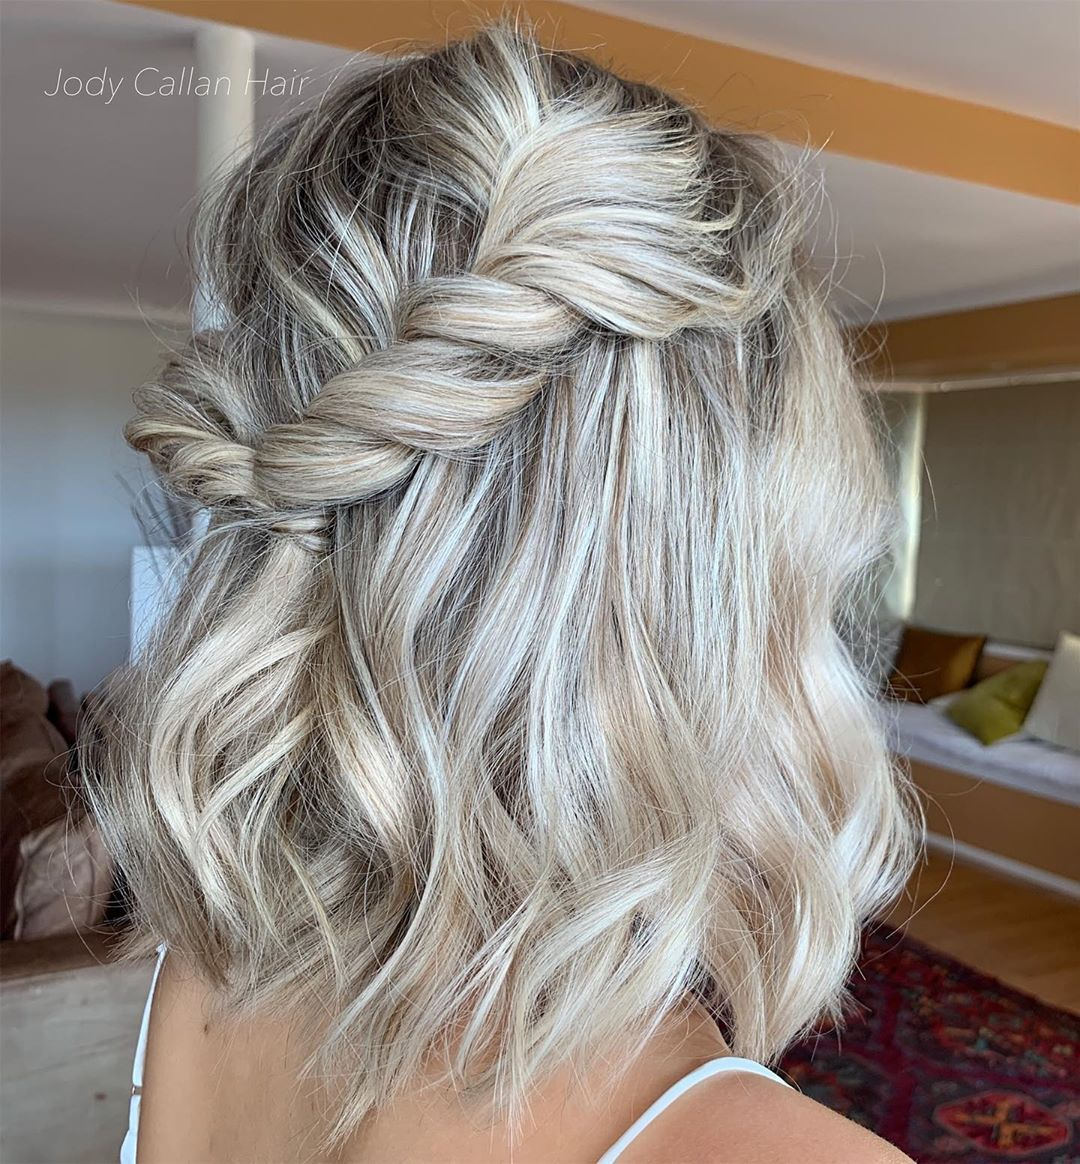 """Bridal + Formal  Hairstylist on Instagram: """"Loving all the short hair at the mo how cute is this hairstyle on one of my bridesmaids with the accent rope braid ! Would you wear this ?…"""" -   18 hair Bridesmaid how to ideas"""